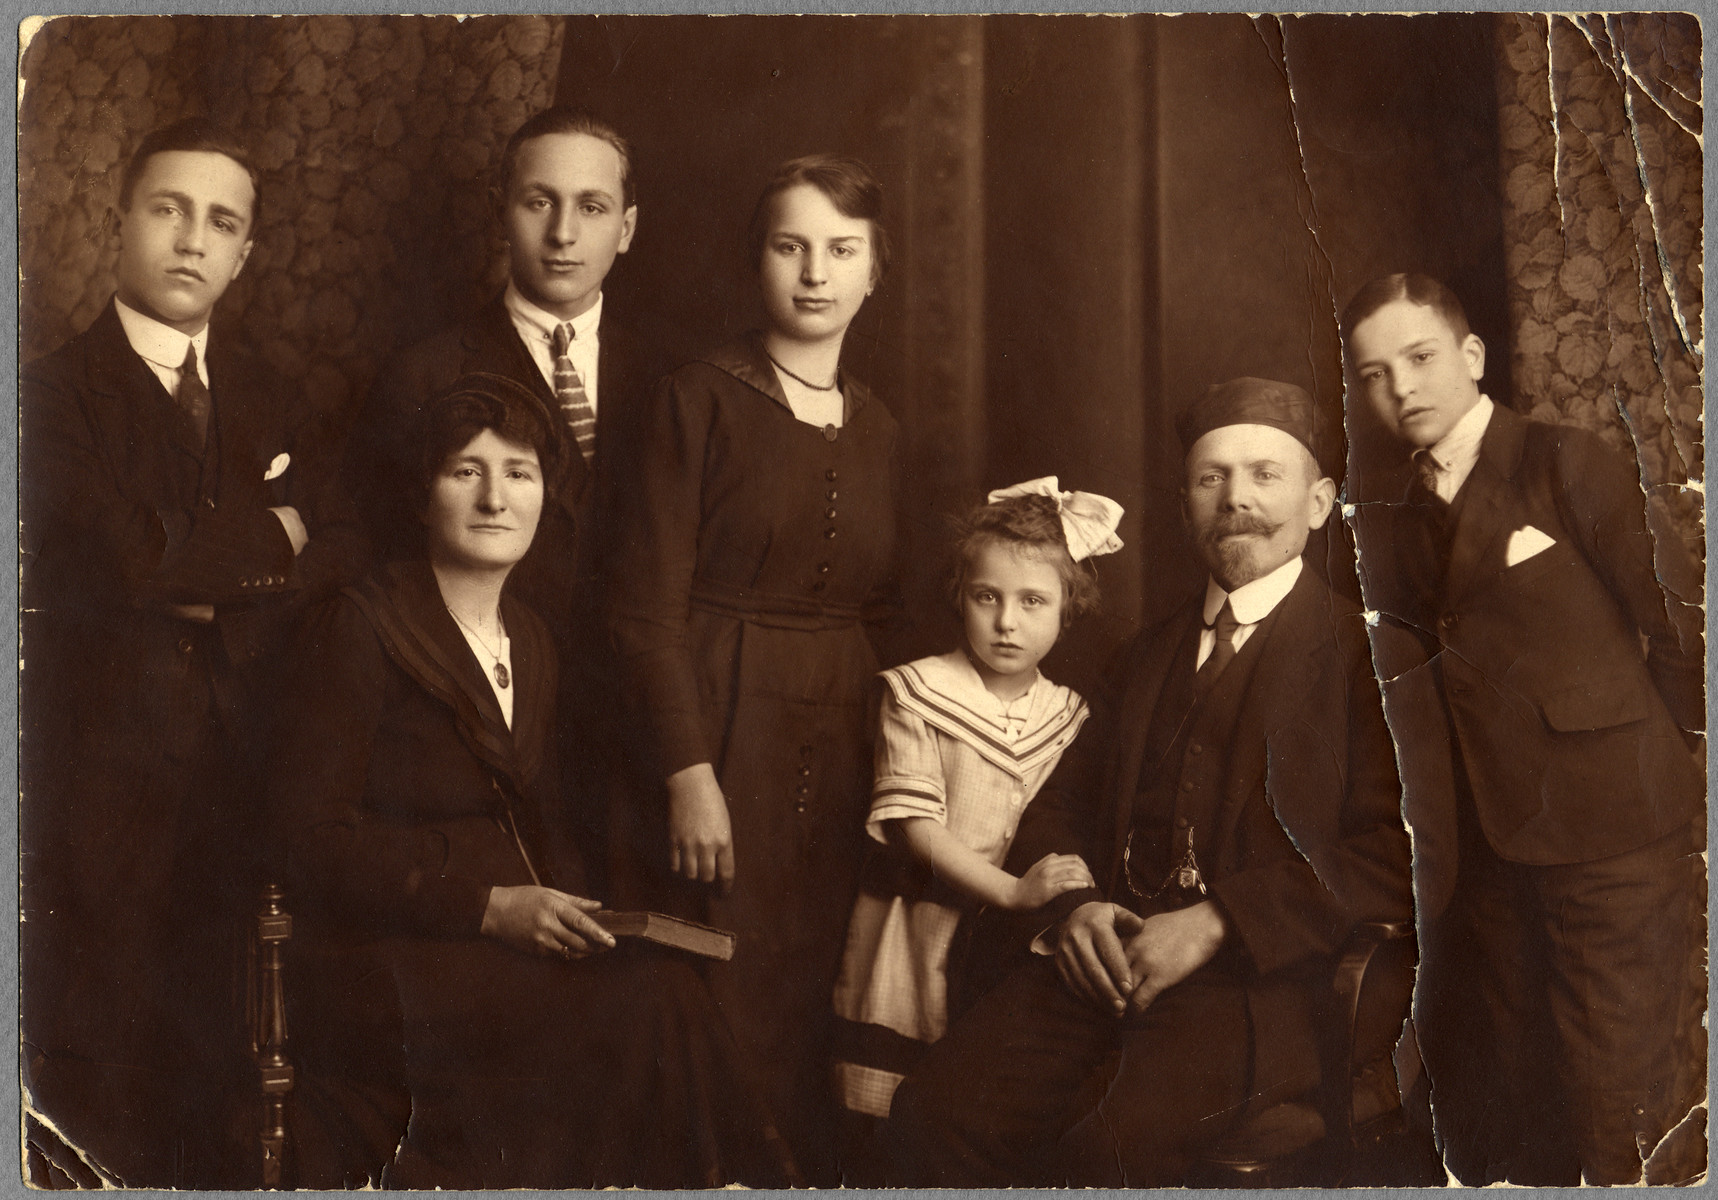 Studio portrait of an Austrian Jewish family.  Pictured from left to right are Rudolph, Mathilde (seated), Emil, Hilda, Isabella (Bella), Joseph, and Richard Wiener.